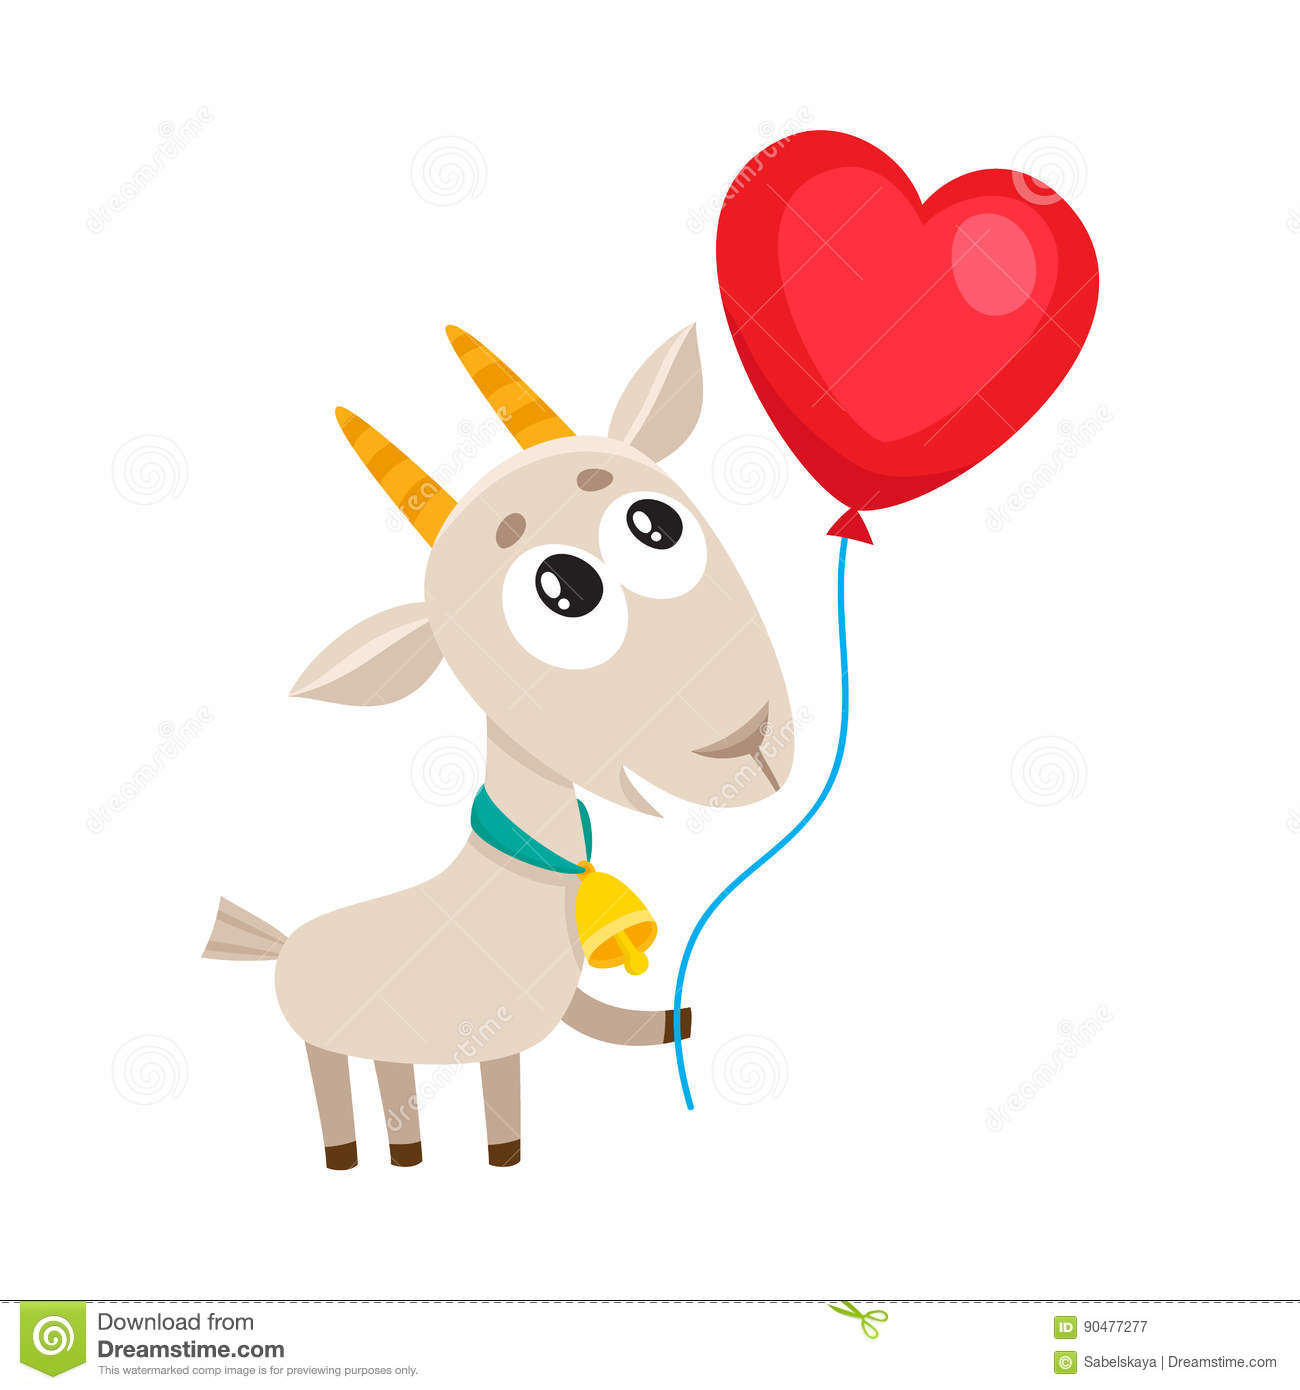 Cute and funny goat holding red heart shaped balloon, cartoon vector illustration isolated on white background. Baby goat holding heart balloon, birthday ...